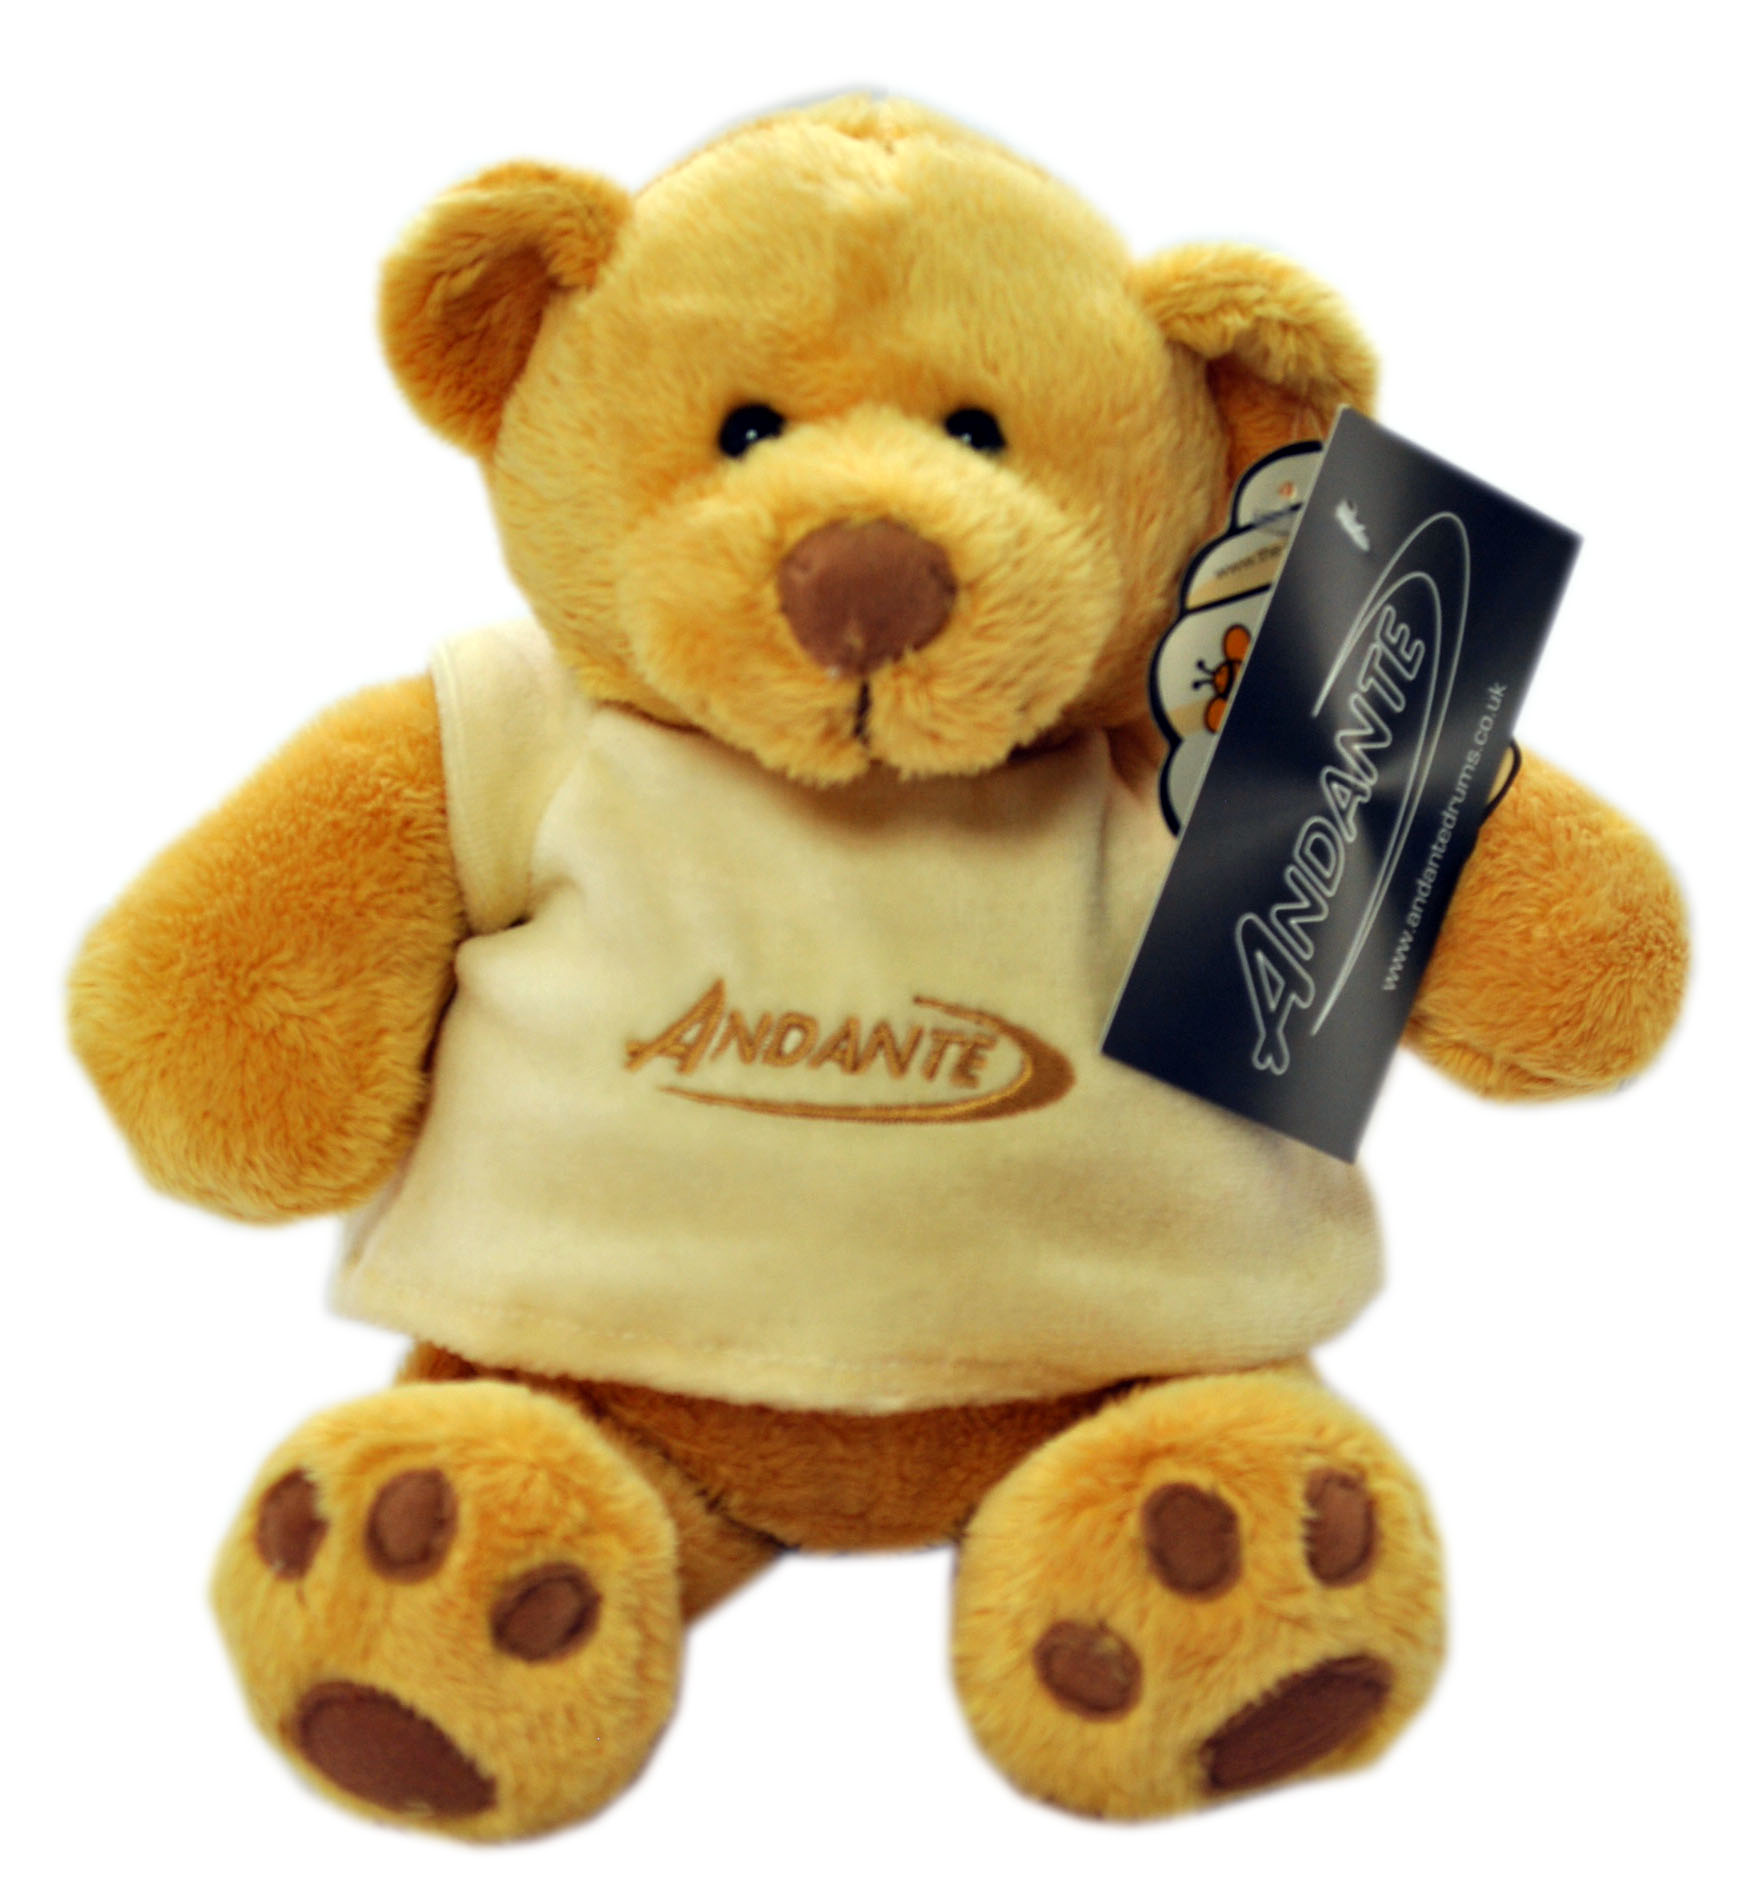 Andante Honey Bear